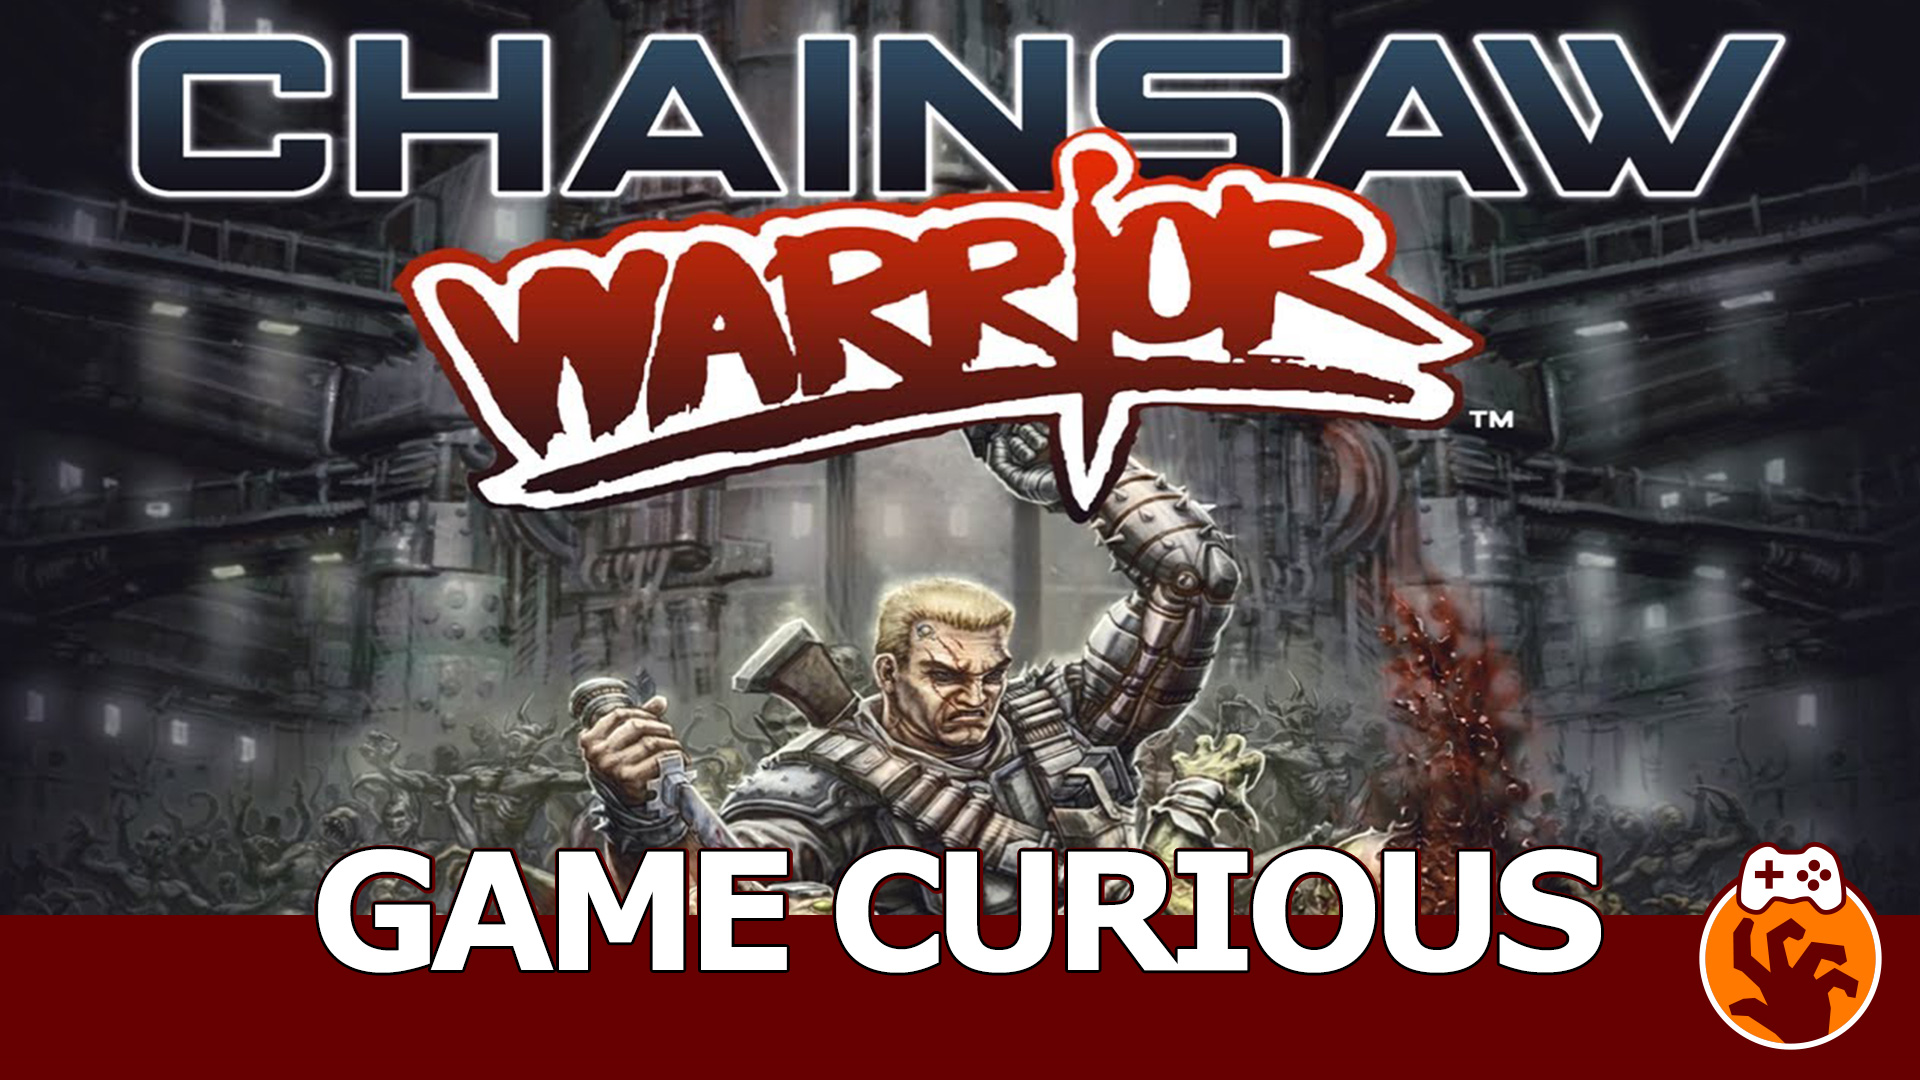 Game Curious – Chainsaw Warrior: Sawing Through Evil New York